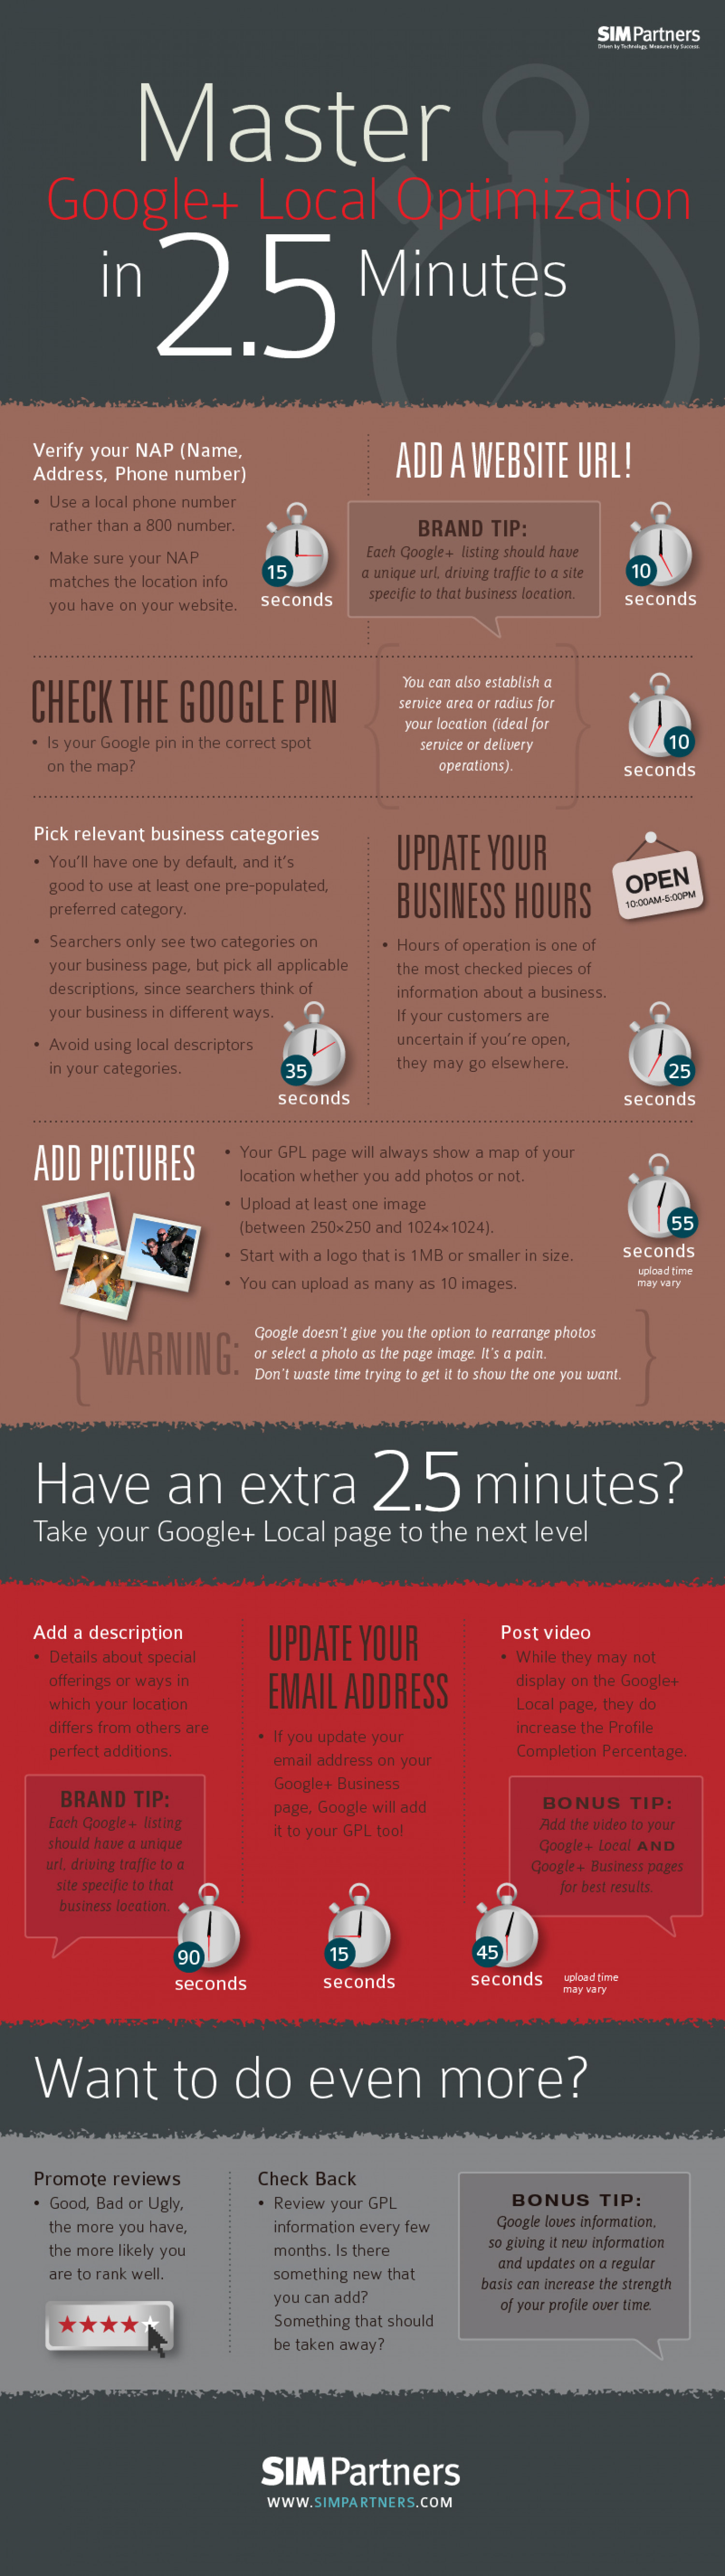 Master Google+ Local Optimization in 2.5 Minutes Infographic